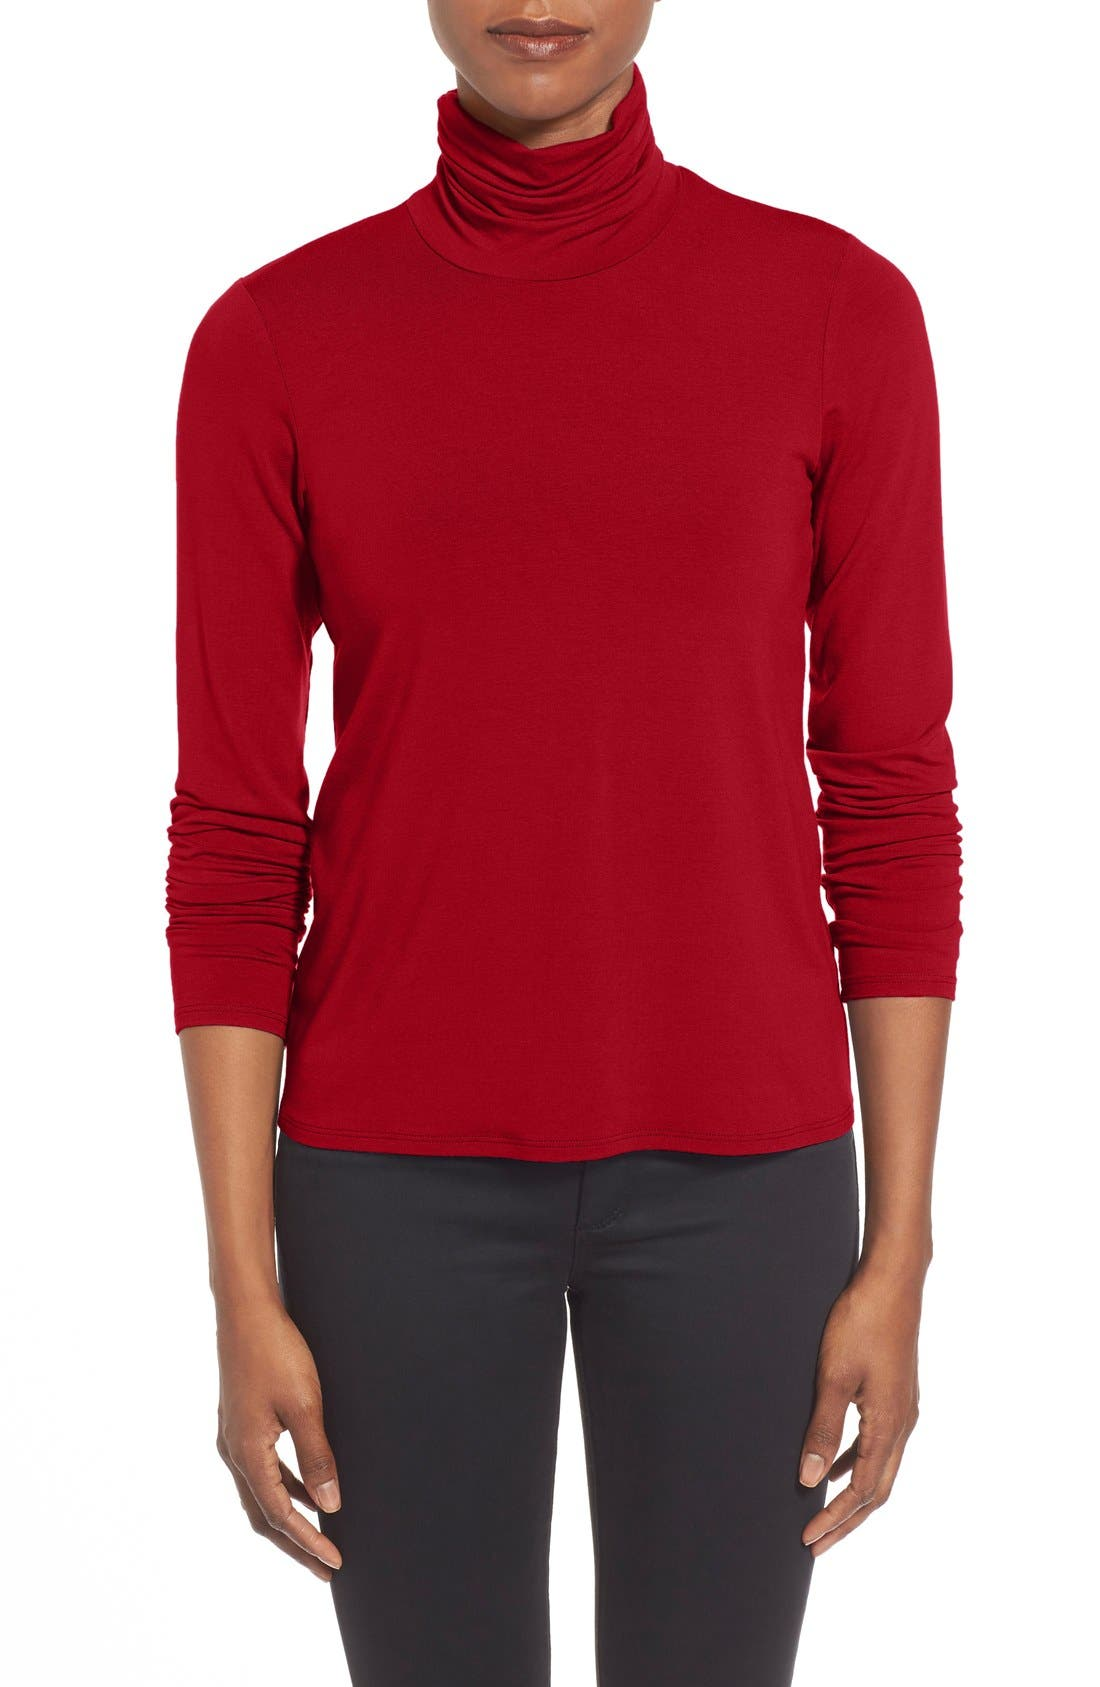 Alternate Image 1 Selected - Eileen Fisher Scrunch Neck Top (Regular & Petite)